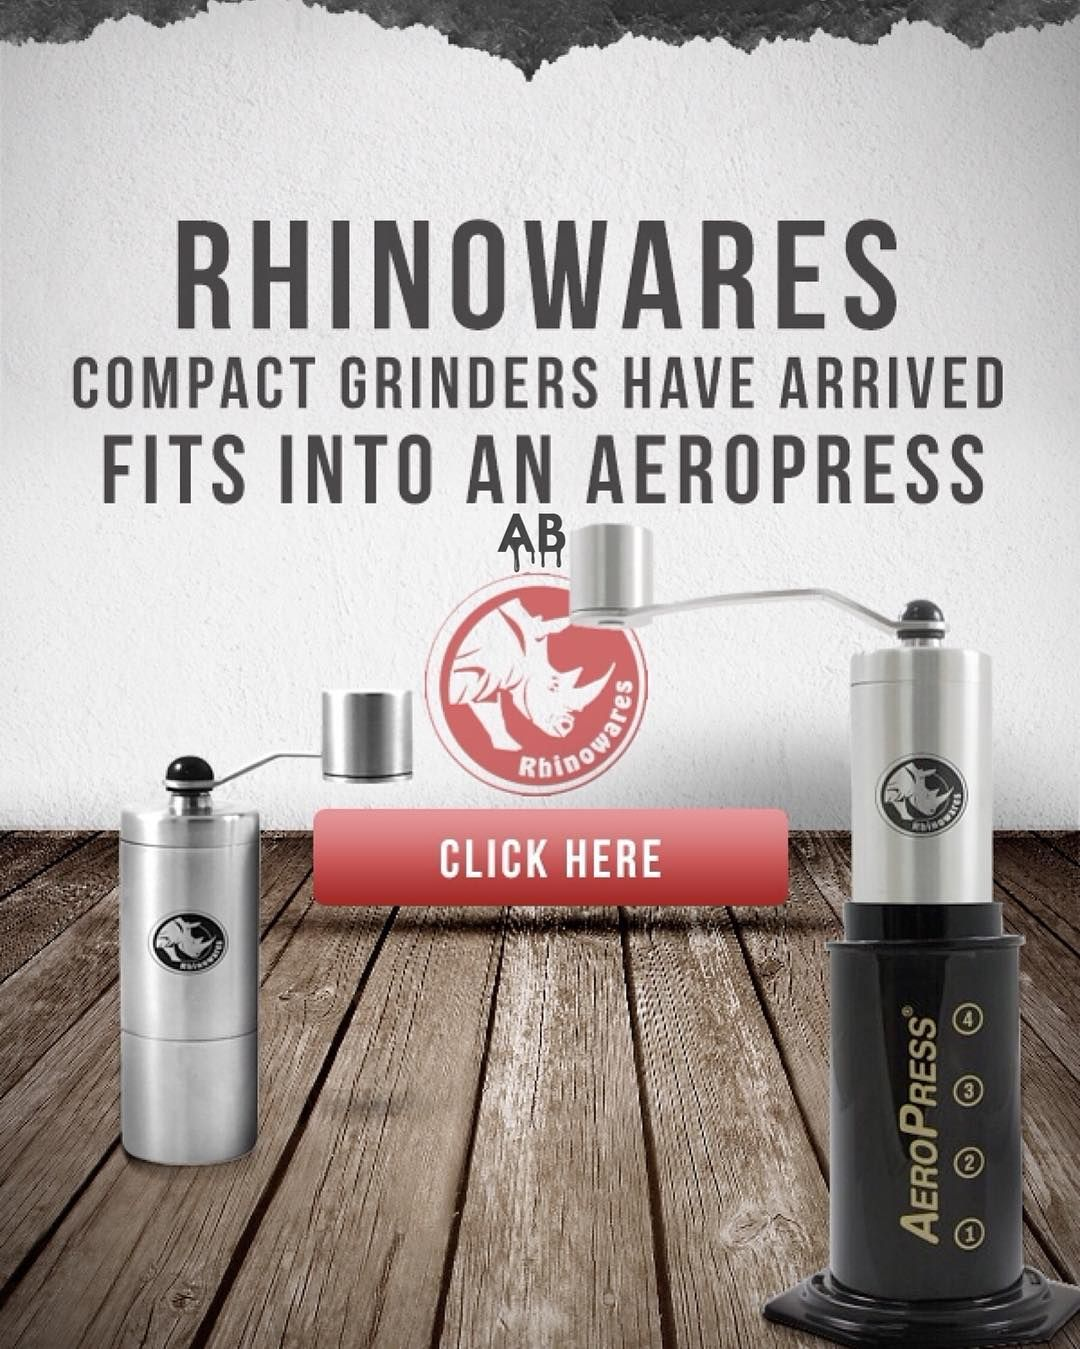 Rhinowares Compact Grinder now in stock at @alternativebrewing online Store! Shop Online at: @alternativebrewing - link in bio #AlternativeBrewing & TAG us to be featured by originalaeropress